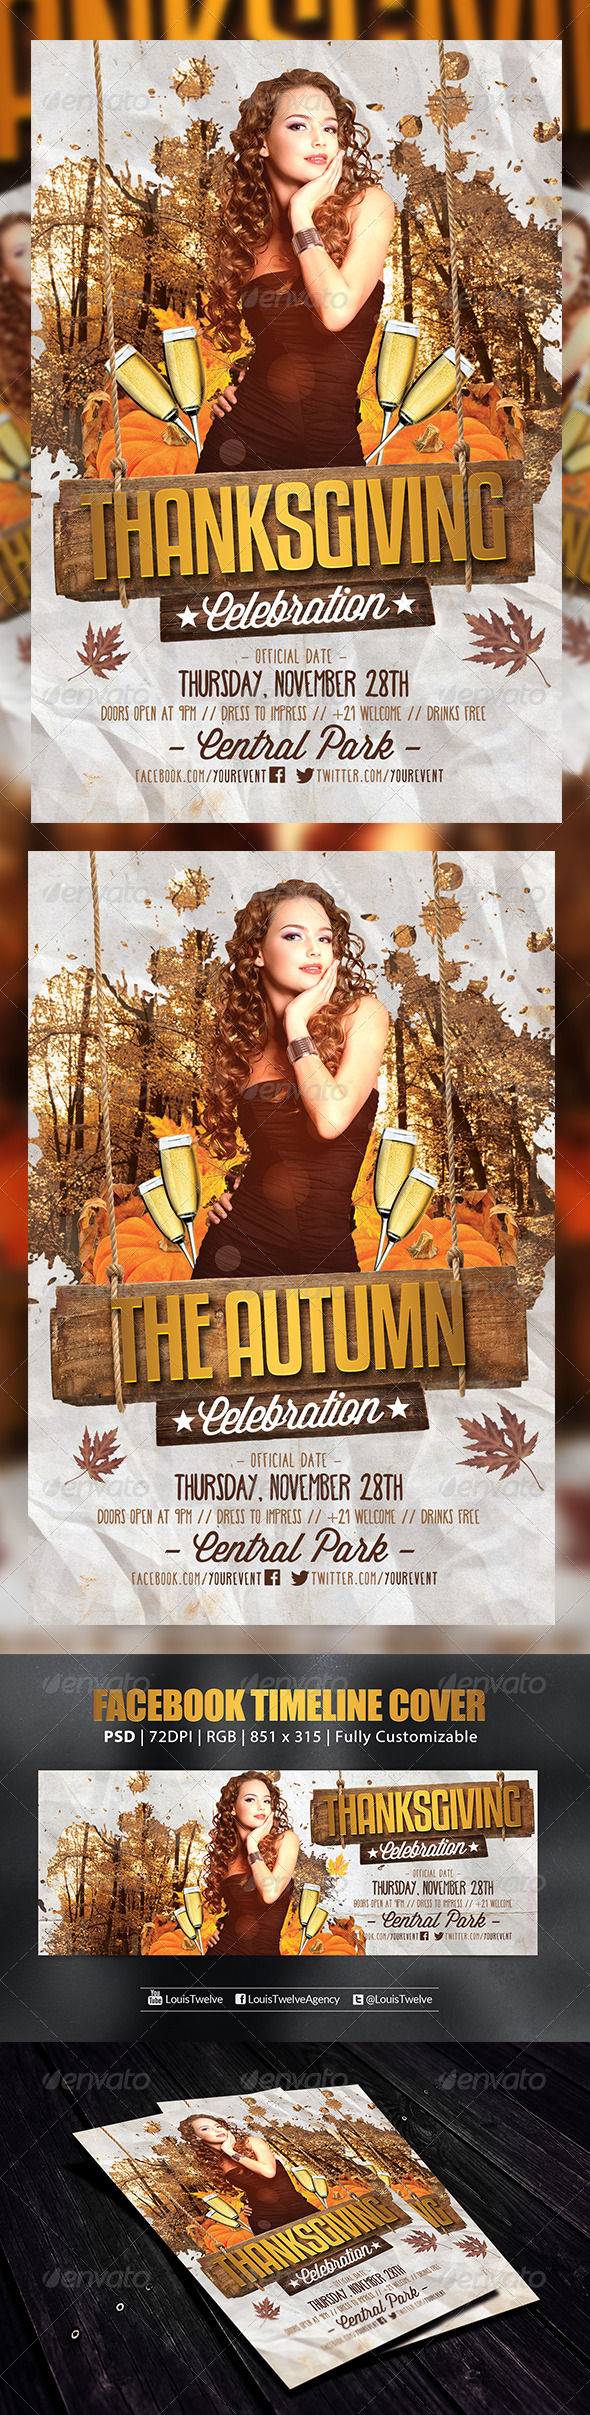 GraphicRiver Thanksgiving or Autumn Party 3 Flyer & FB Cover 6172251